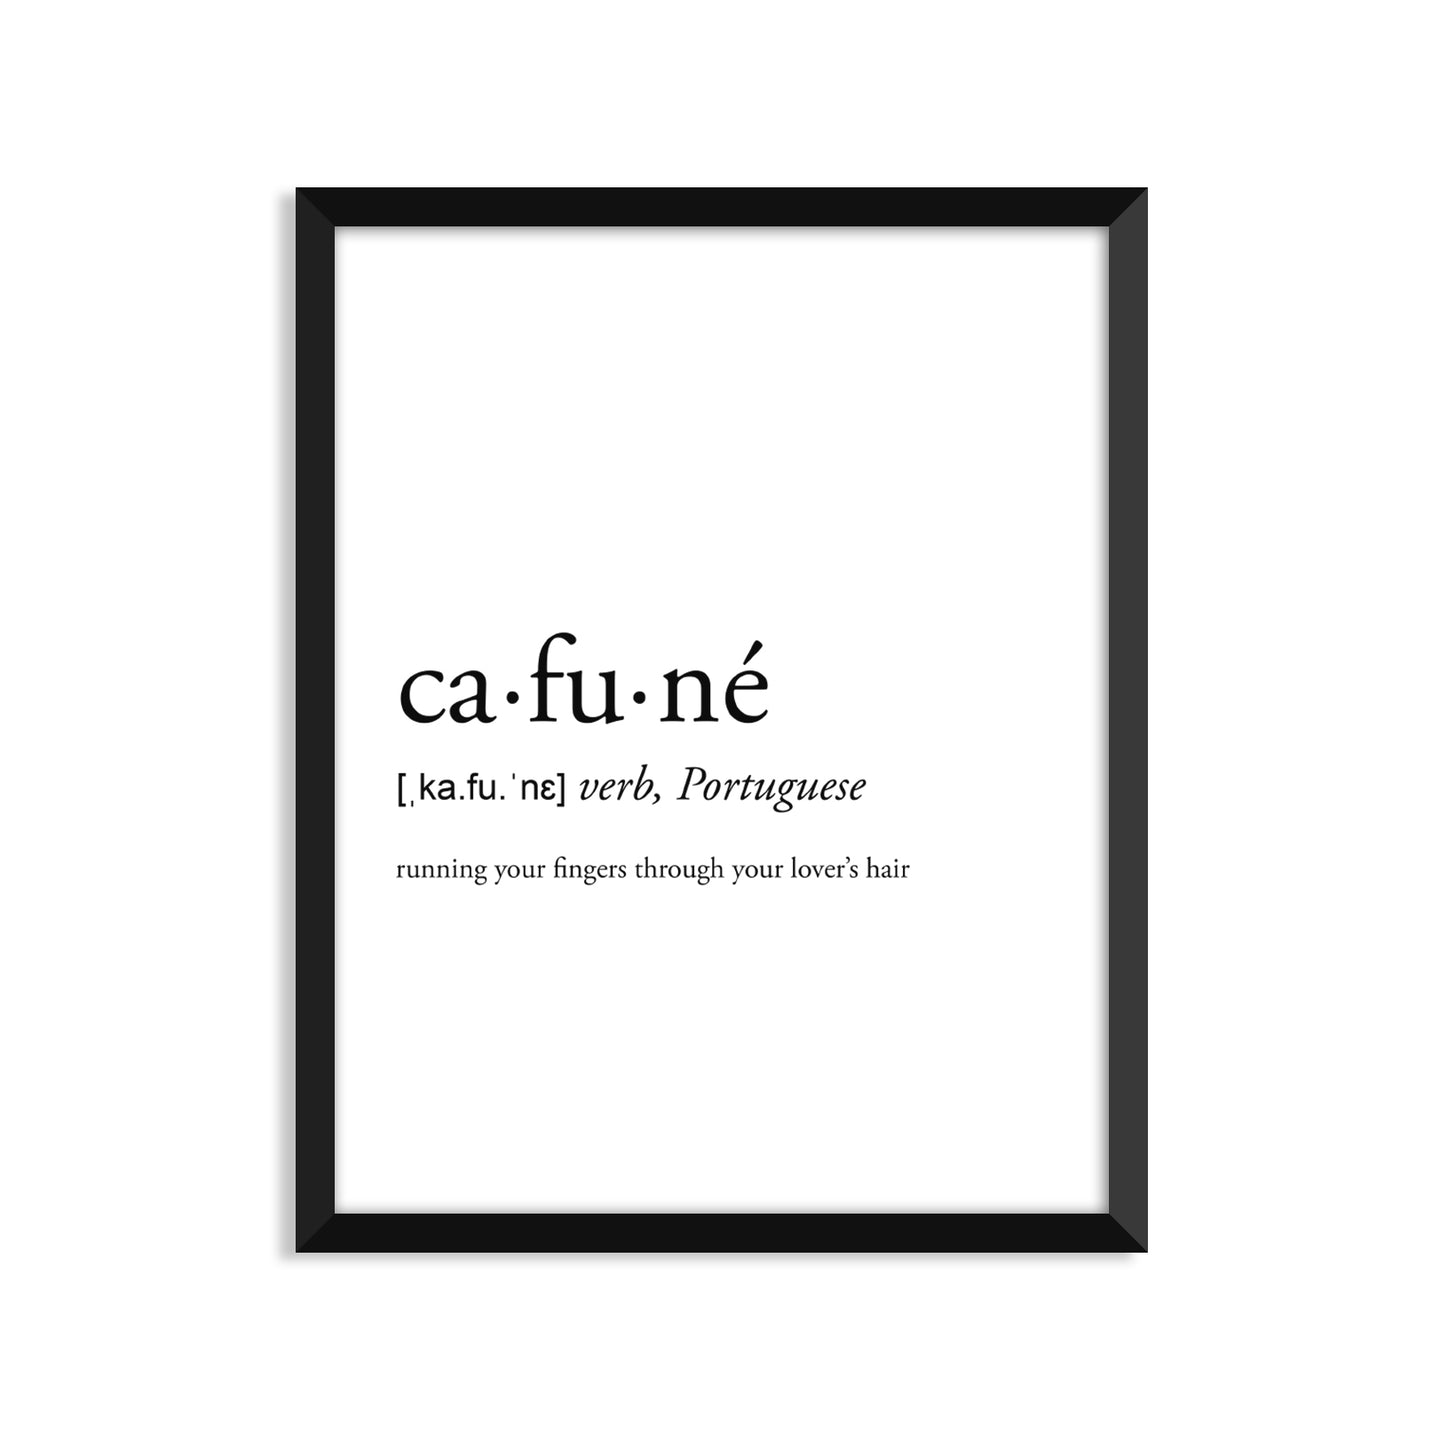 Cafune definition art print or greeting card